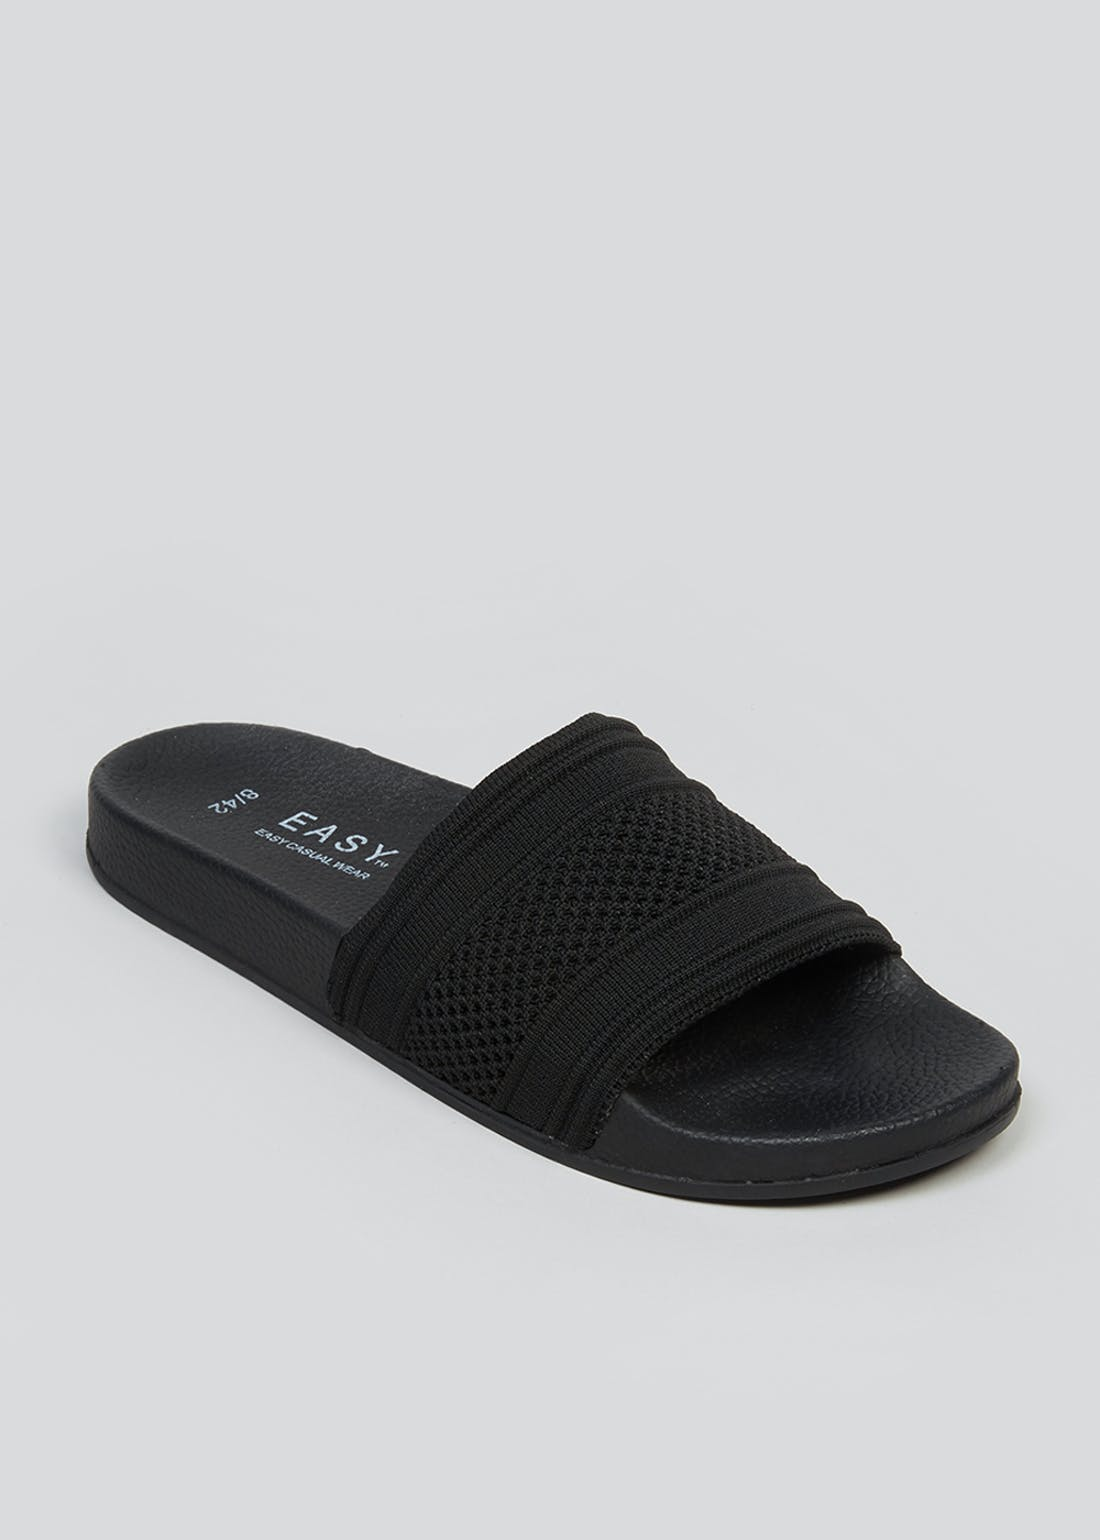 Black Knitted Sliders